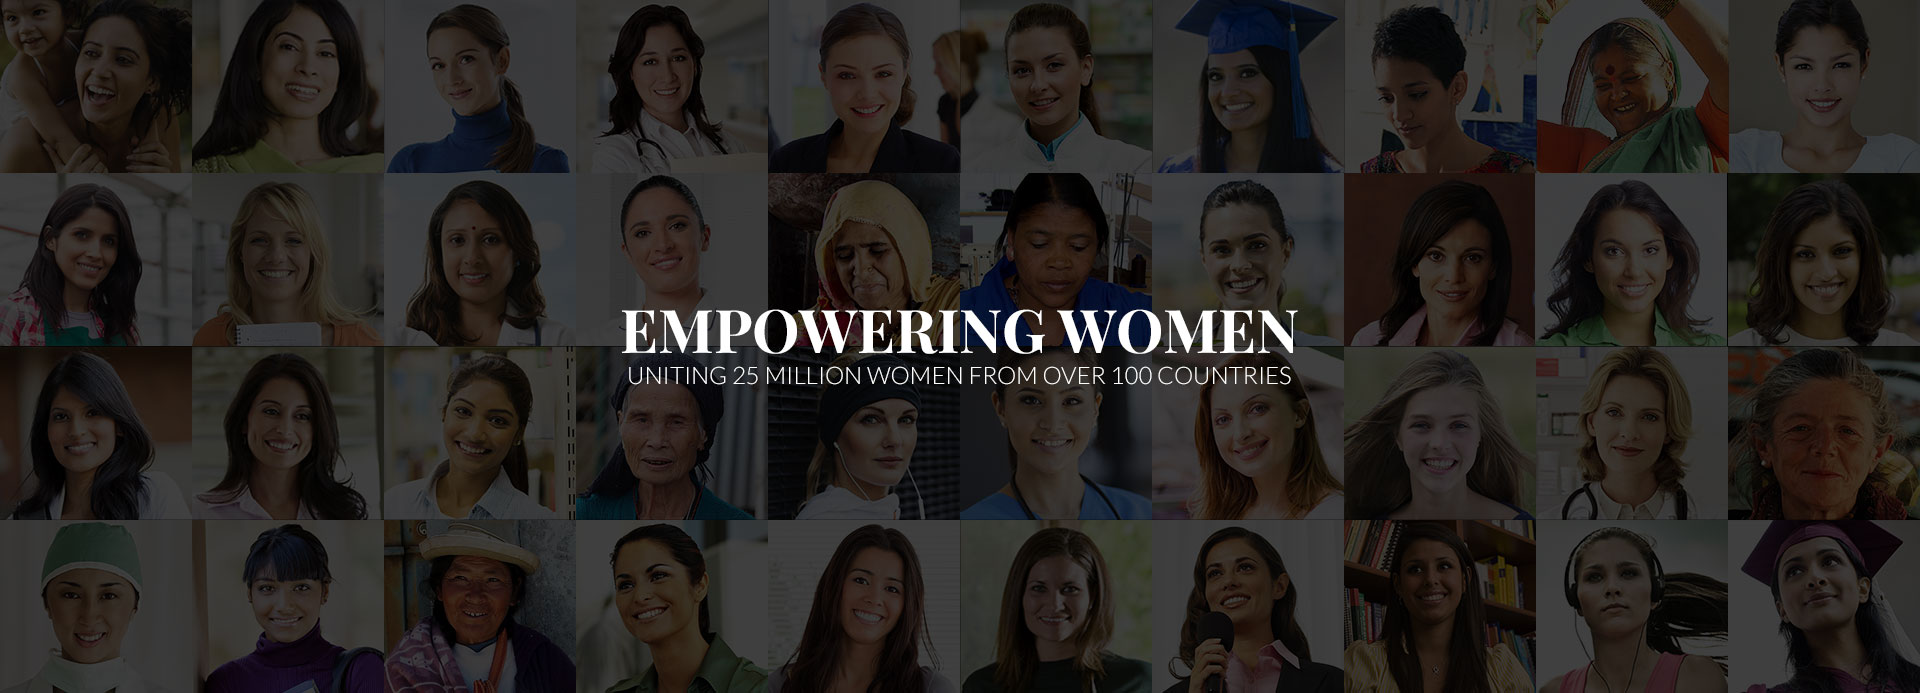 Ywca_spotlight_Empowering_Women